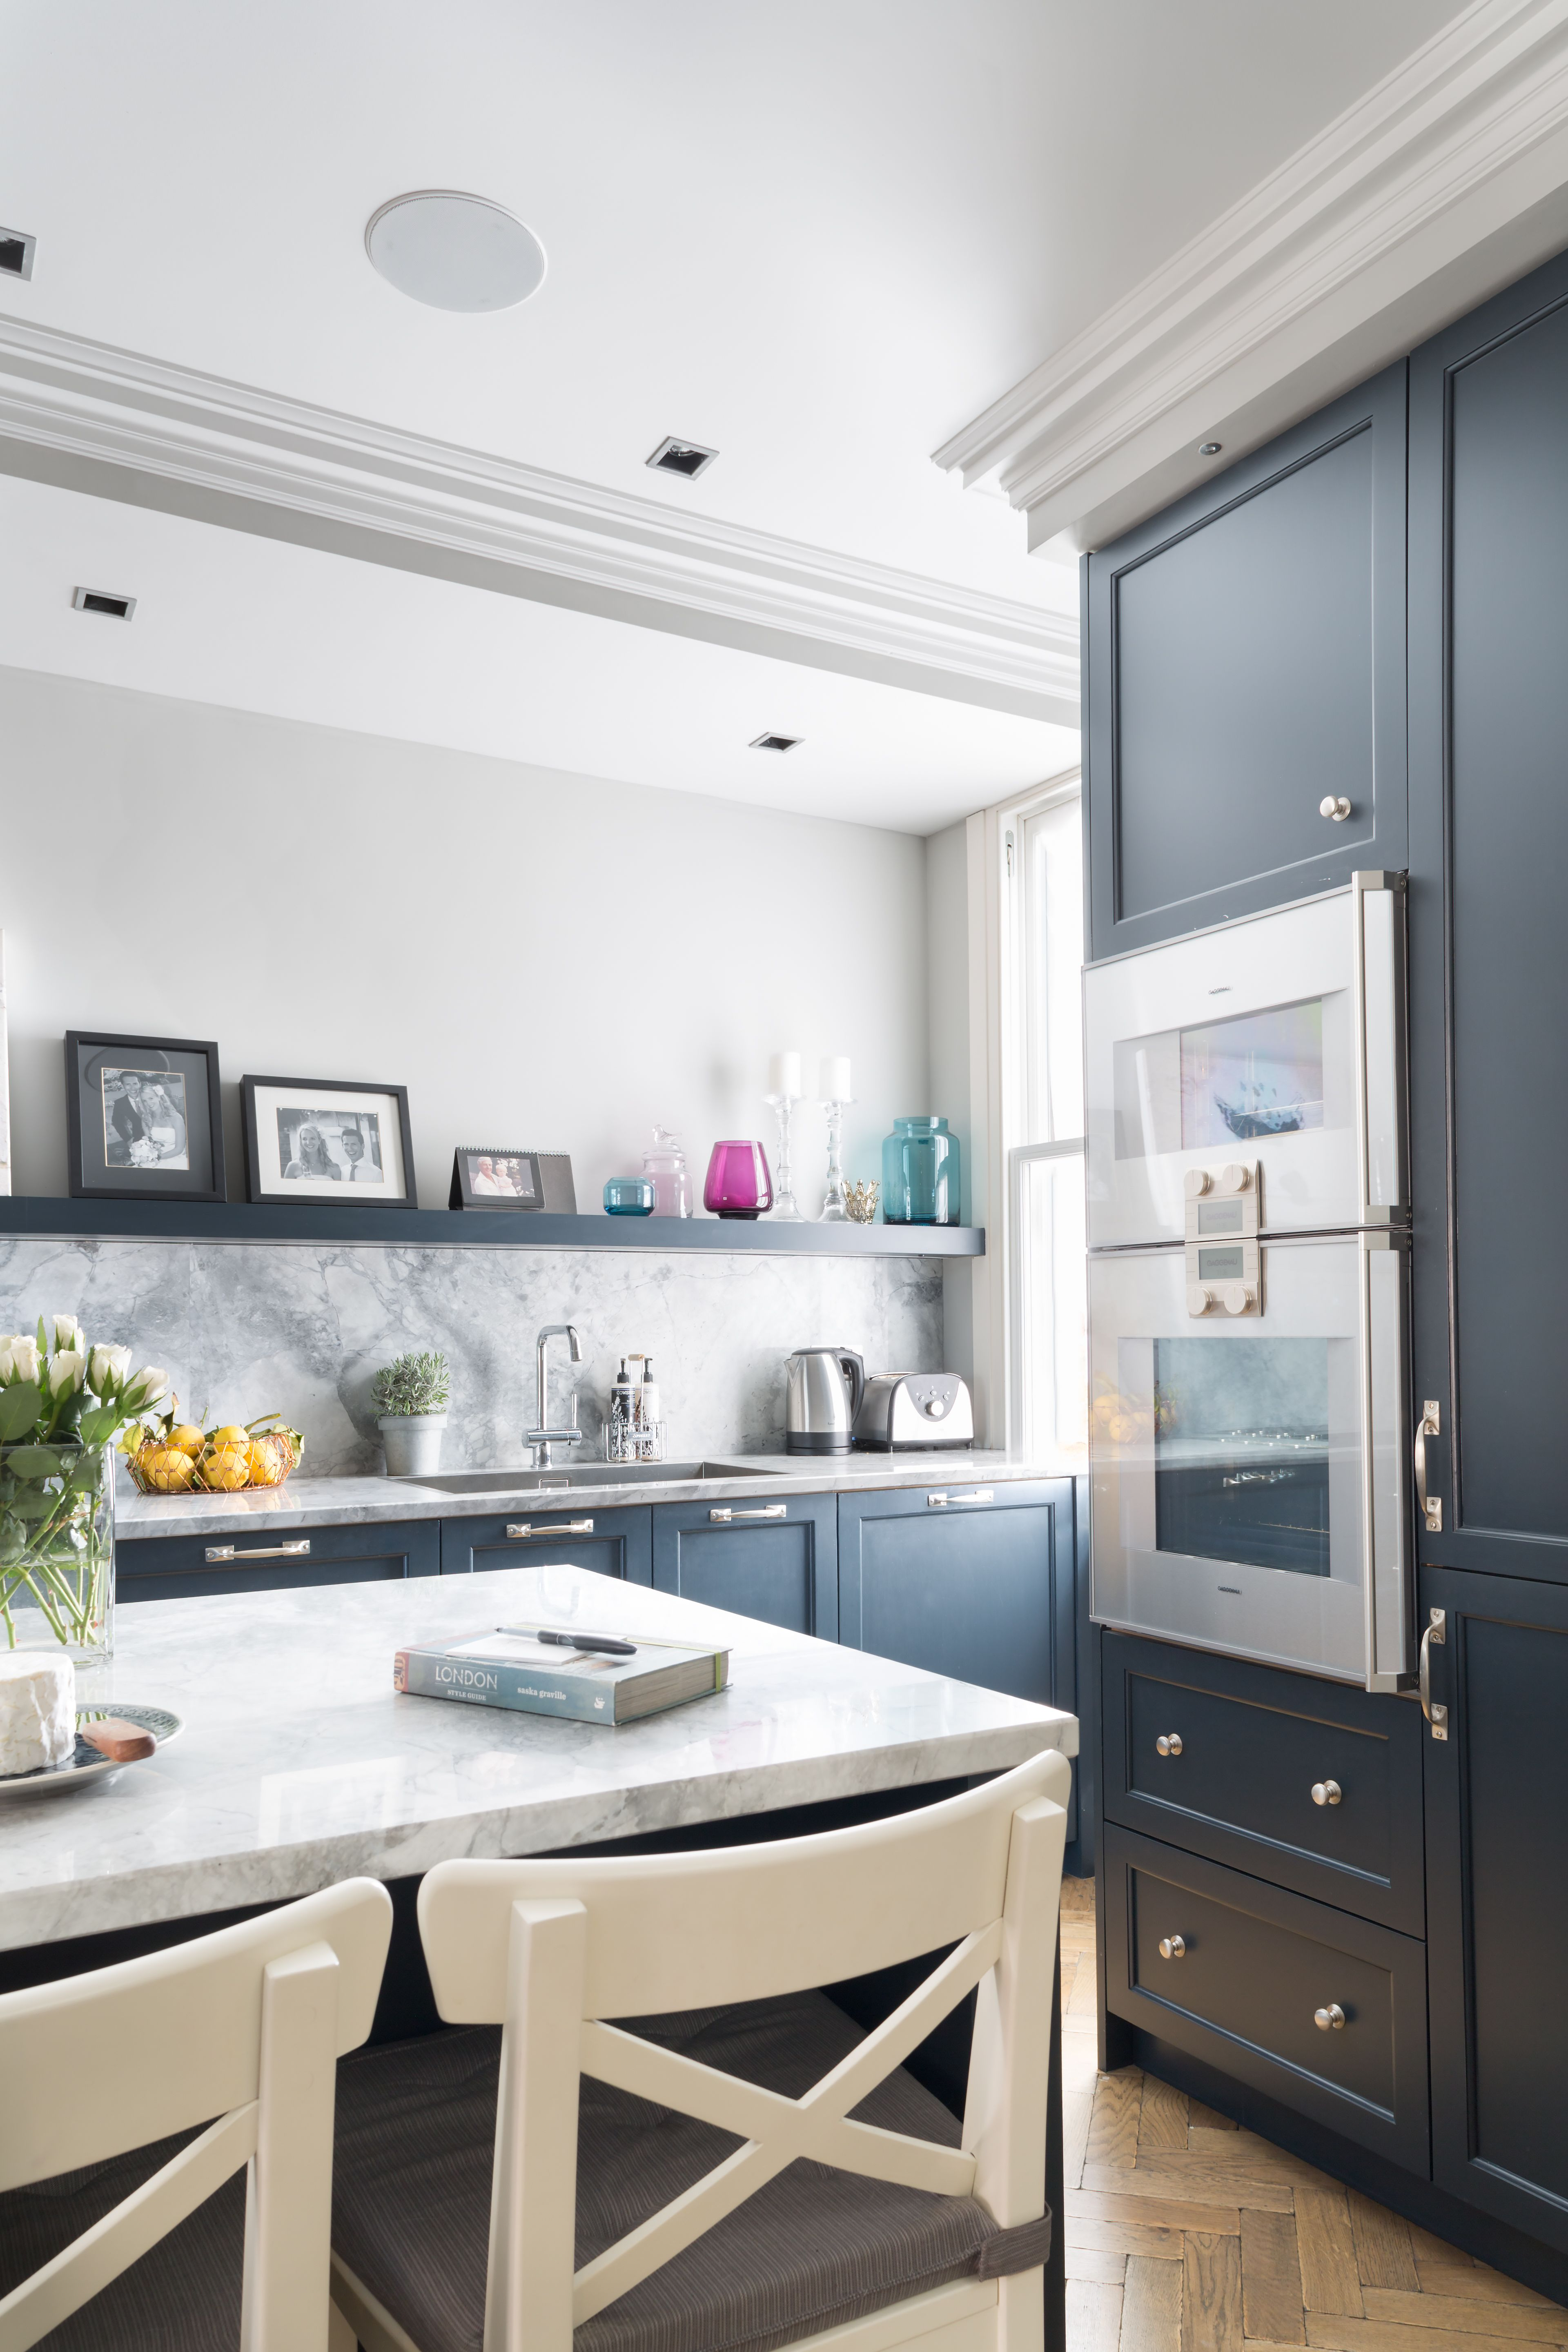 Modern Classic Kitchen Design: Bespoke Kitchen. Classic Tradition With A Touch Of